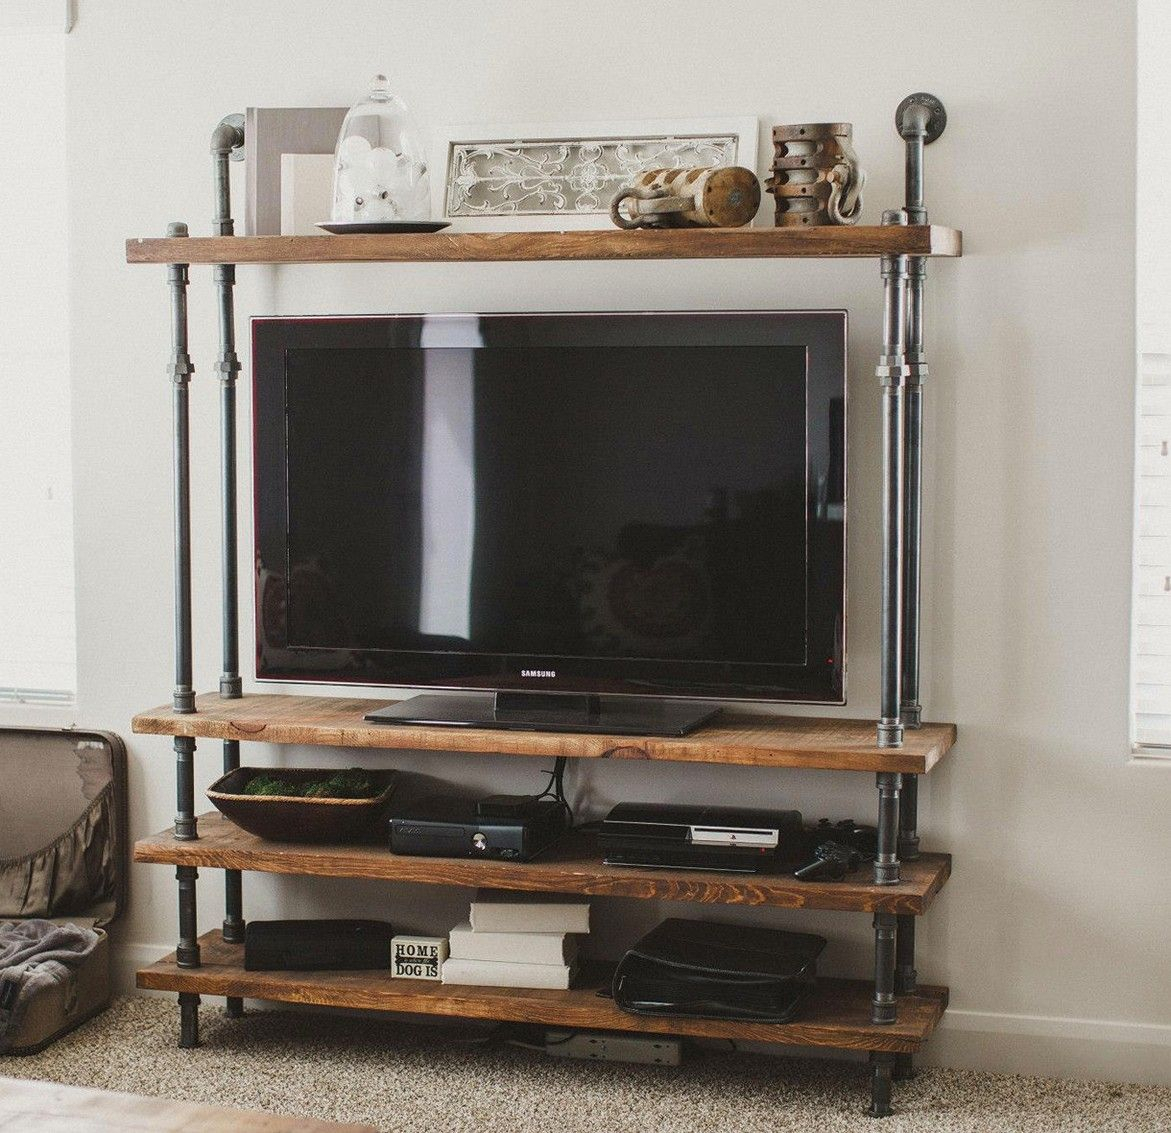 Tv + Accessories Stand With Wood + Pipe (View 4 of 30)